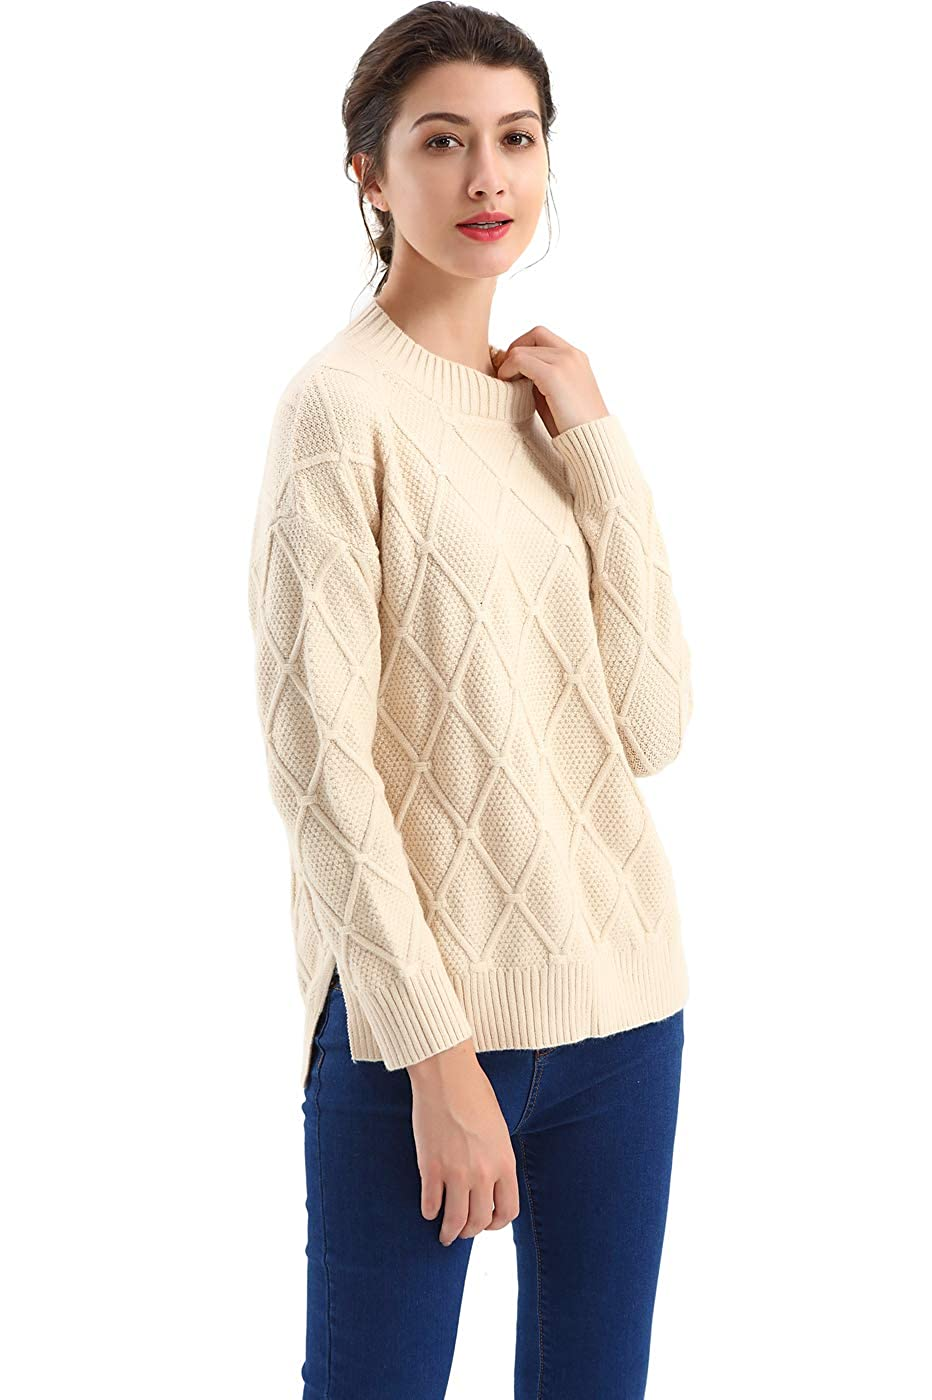 3192c0db934e9c BodiLove Women's Mock Neck Pullover Fishermen Cable Knit Sweater at Amazon  Women's Clothing store: